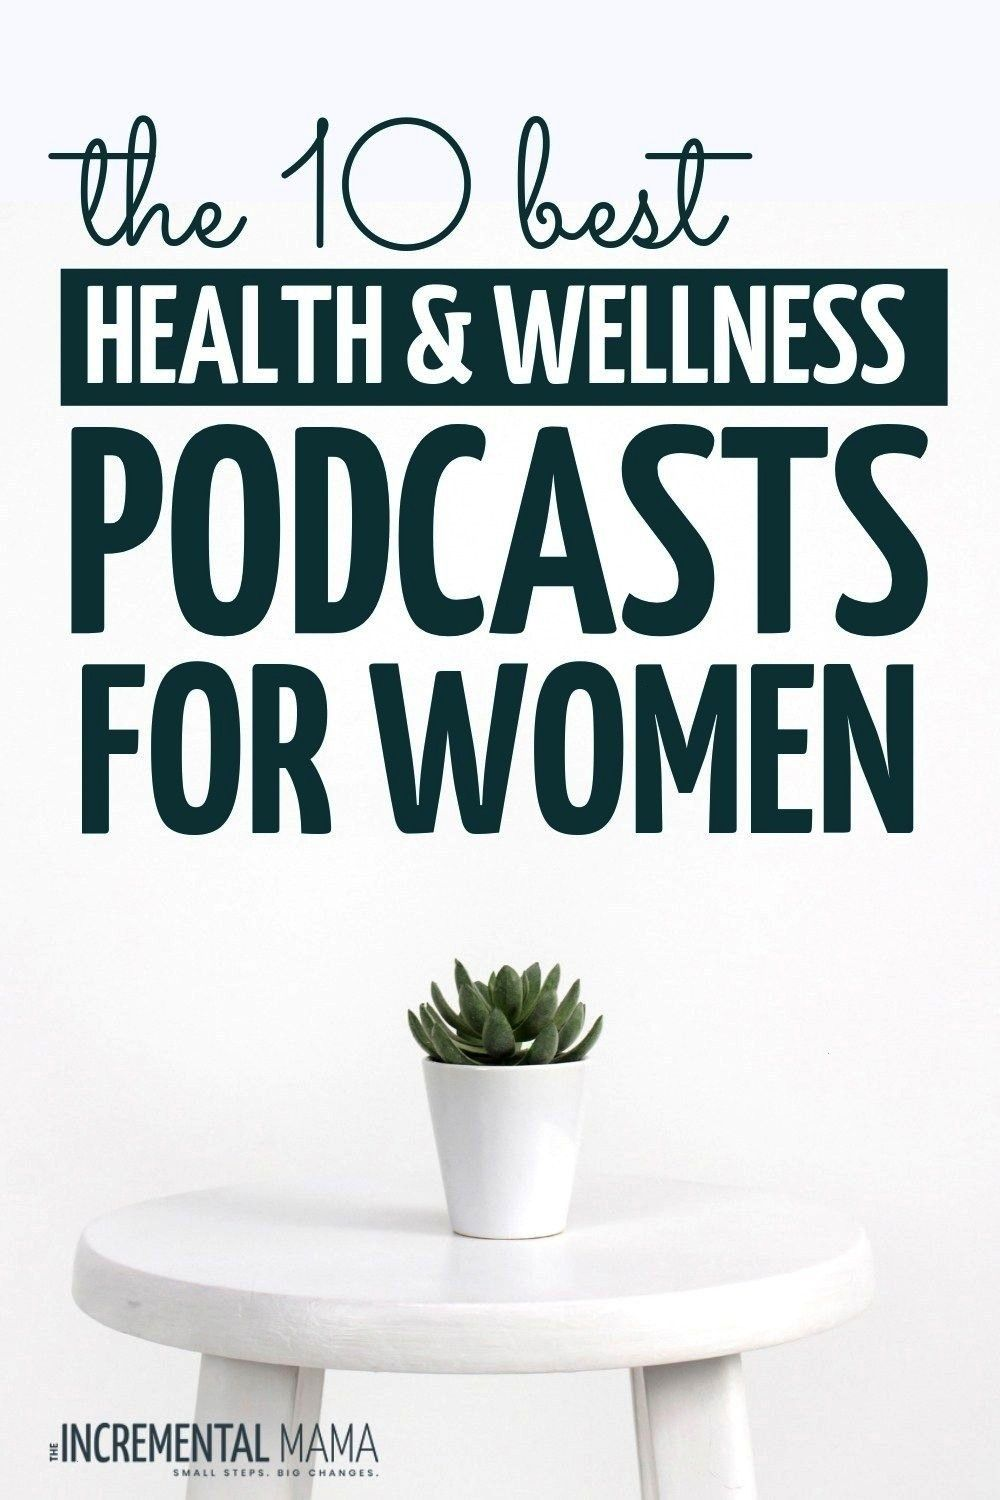 #healthfitnesspodcasts #physically #motivation #healthier #podcasts #mentally #healthy #fitness #hea...